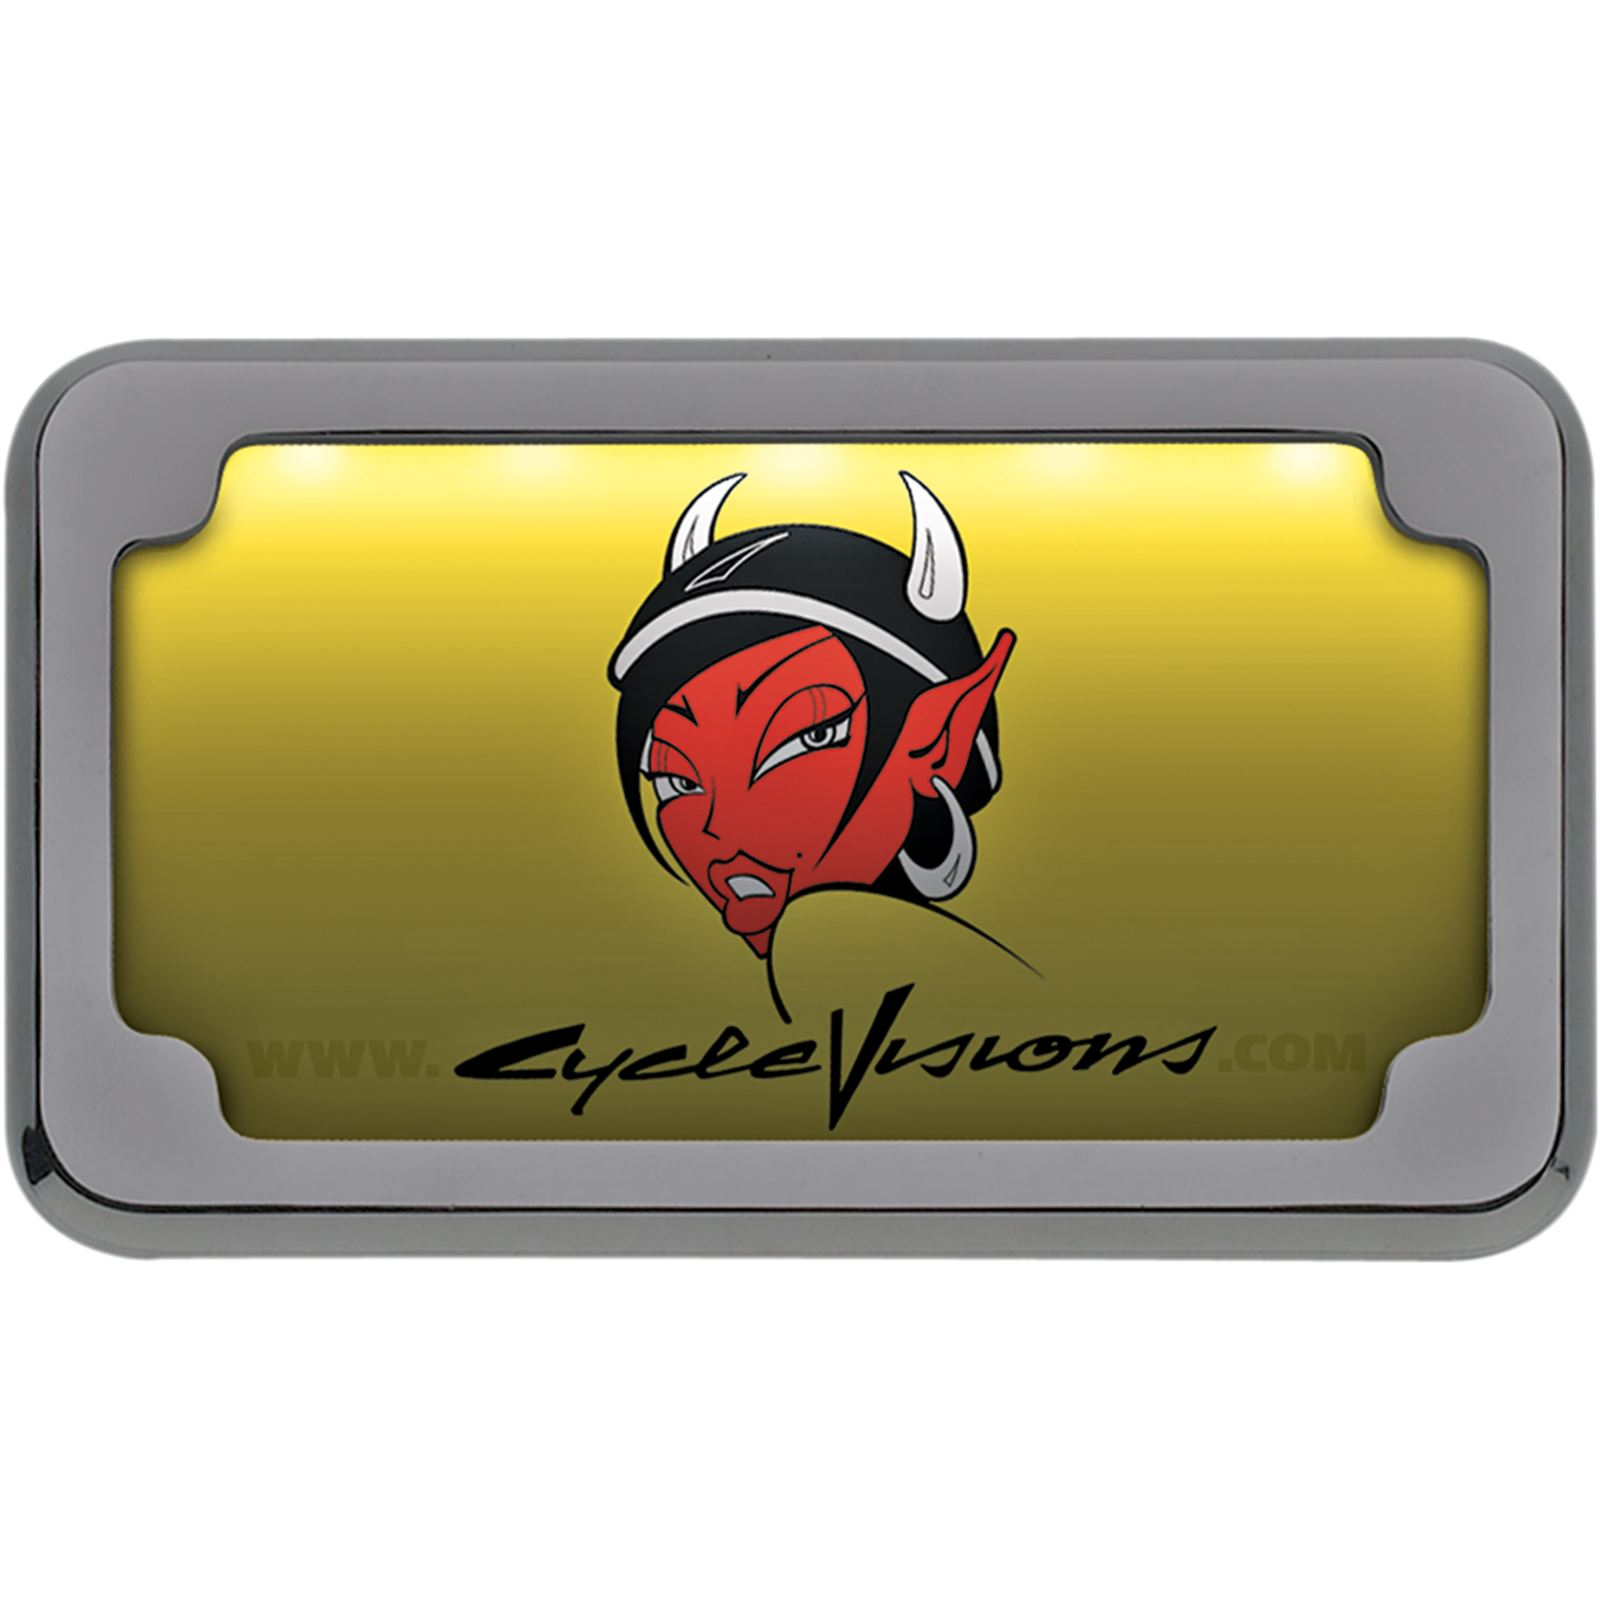 Cycle Visions Beveled License Plate Frame - Chrome - with Plate Light